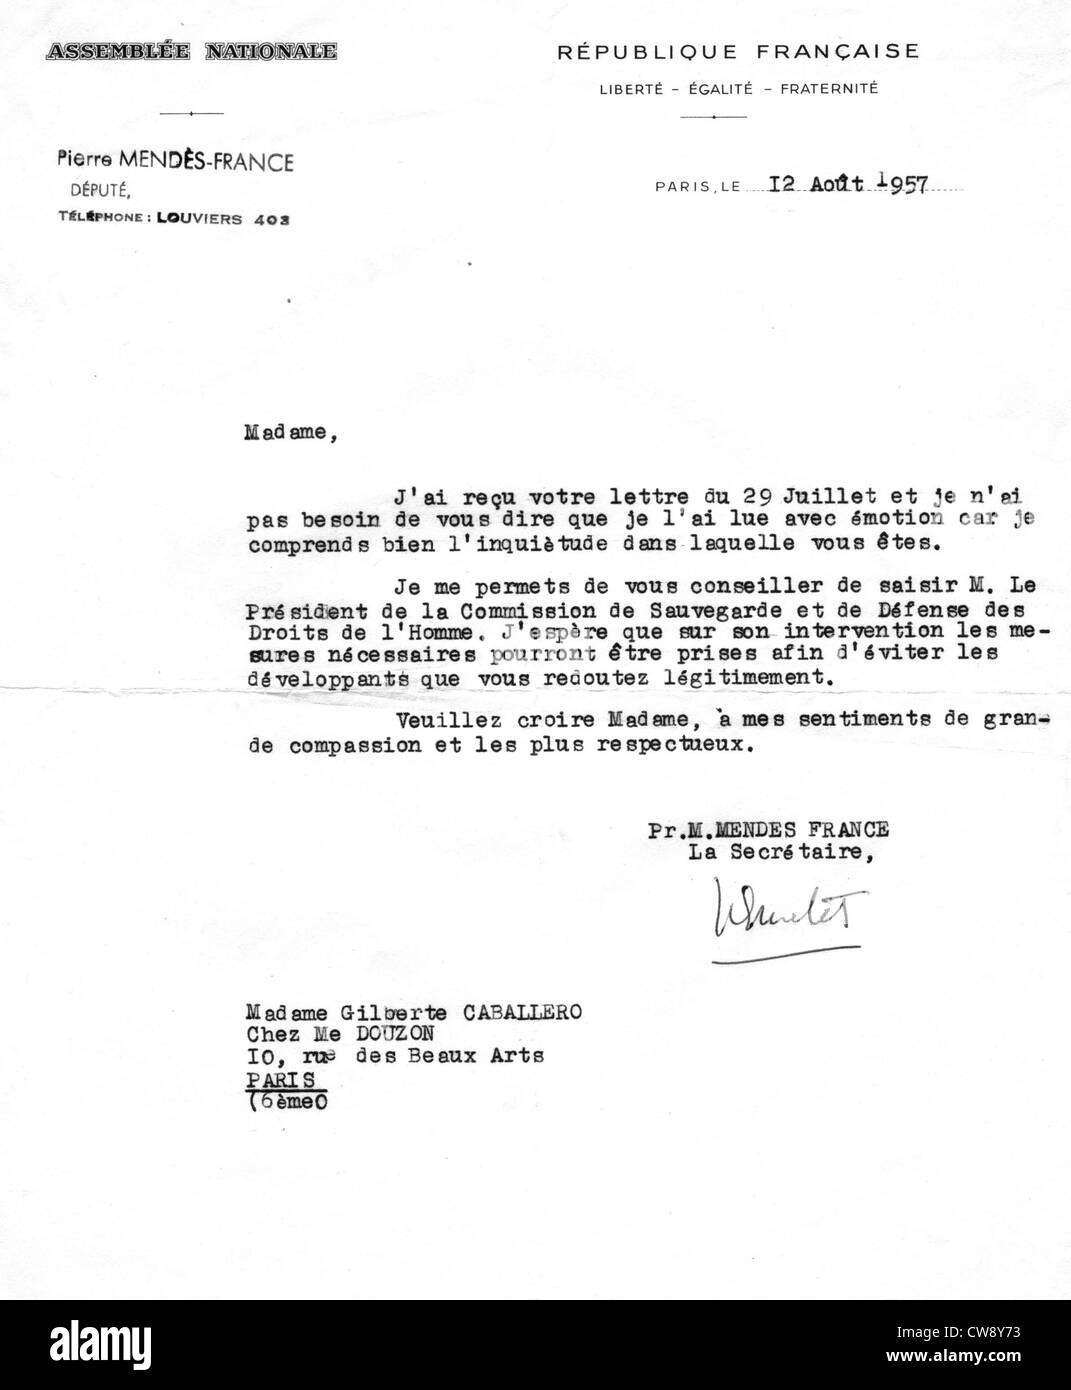 Letter from Mr. Pierre Mendès-France to Mrs. Caballero concerning imprisonment her husband - Stock Image